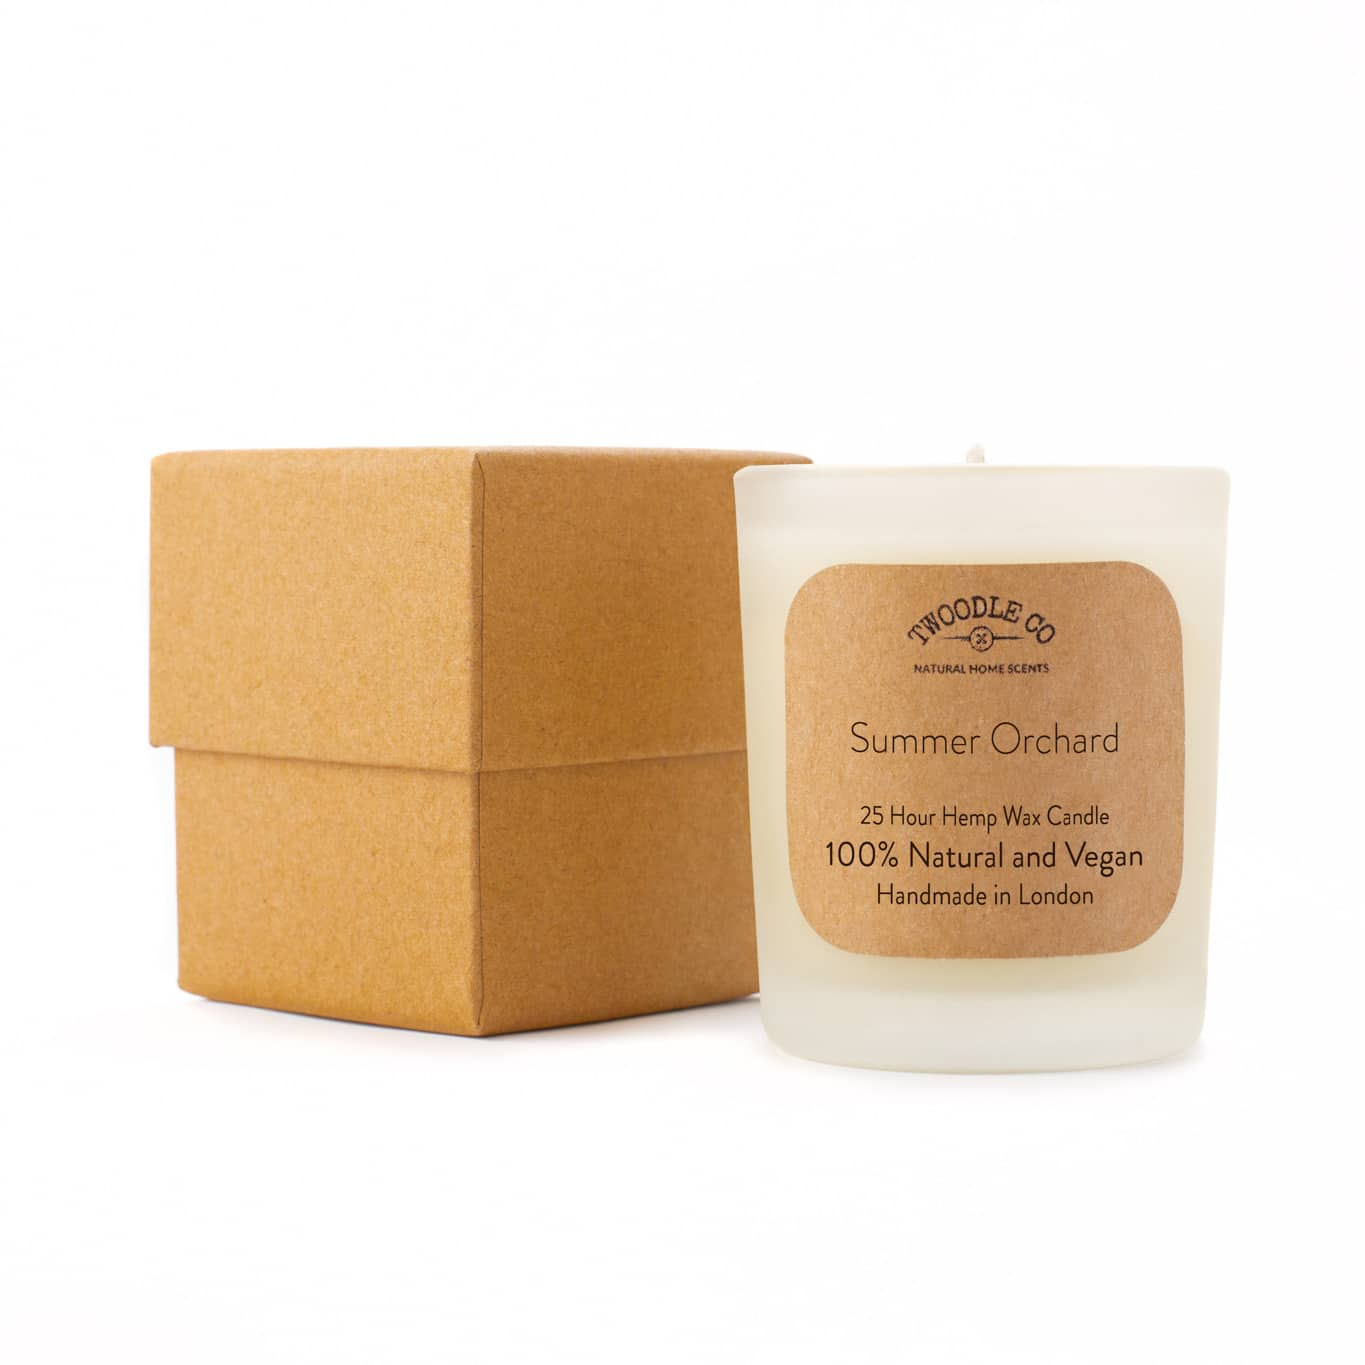 Summer Orchard Small Scented Candle 25 Hour